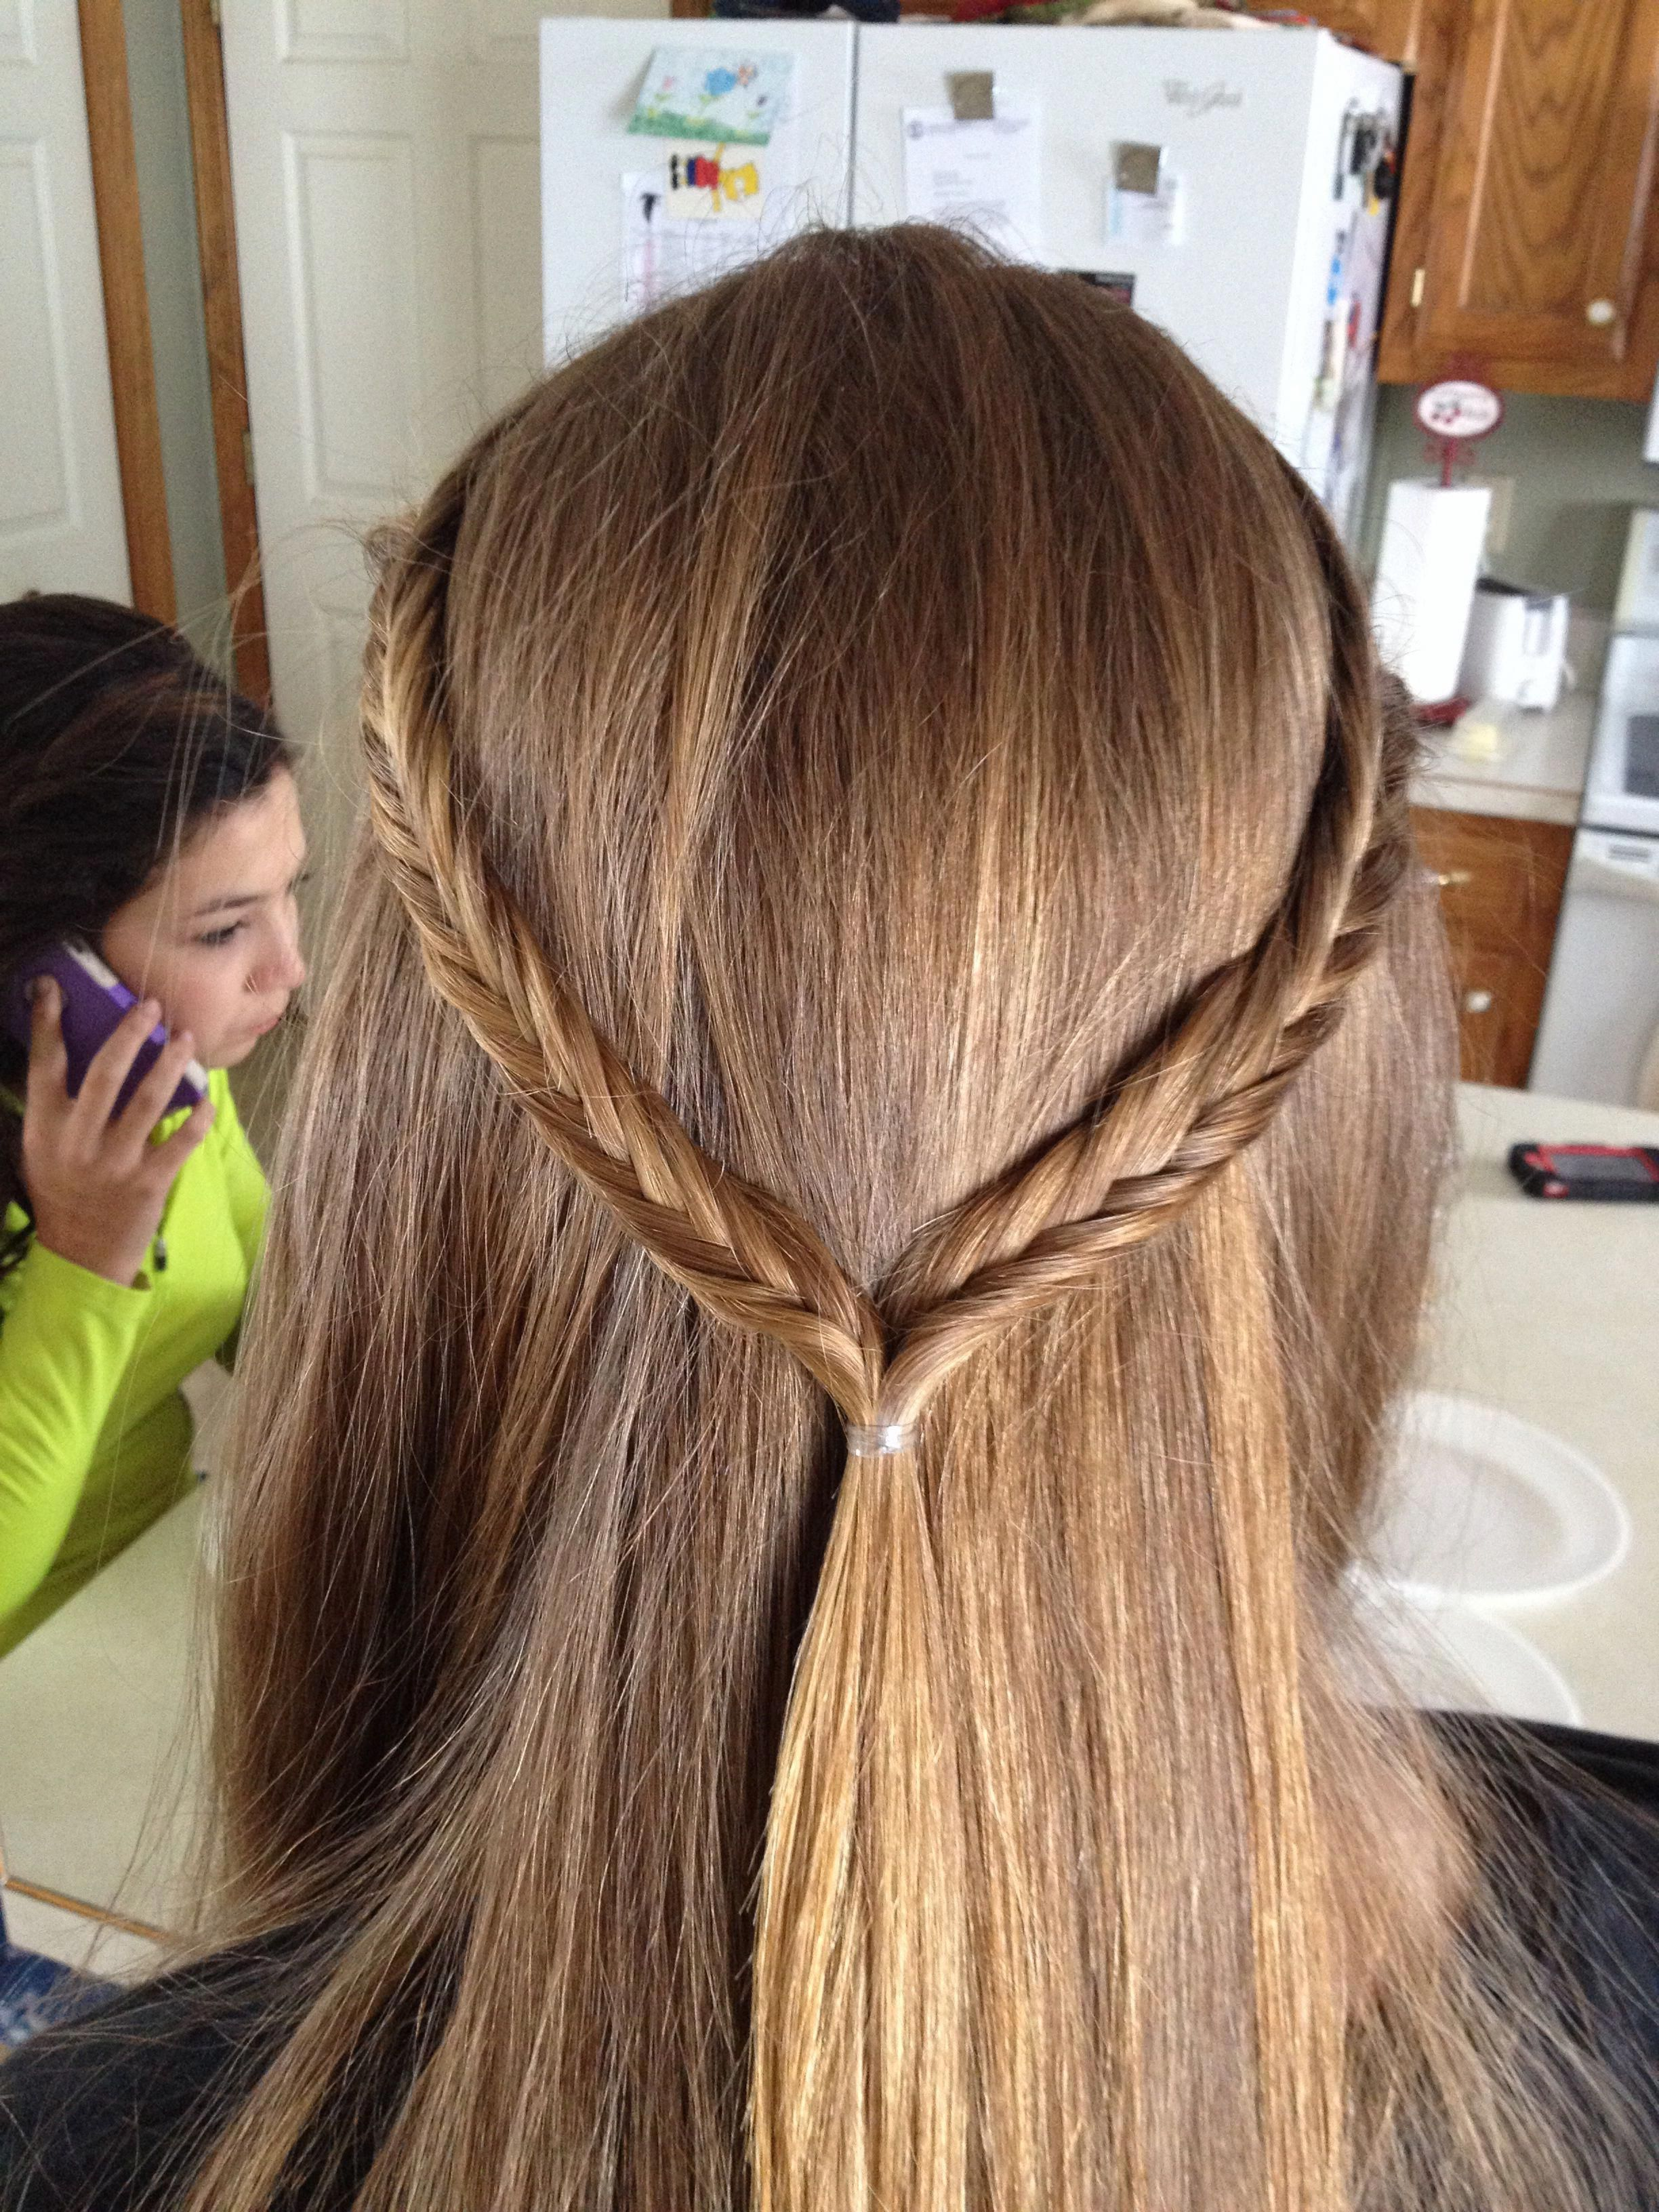 Straight Hair With Fishtail Crown Everyday School Quick Hairstyle Long Hairstyles Homecoming Hair Straight Hairstyles Long Hair Styles Homecoming Hairstyles